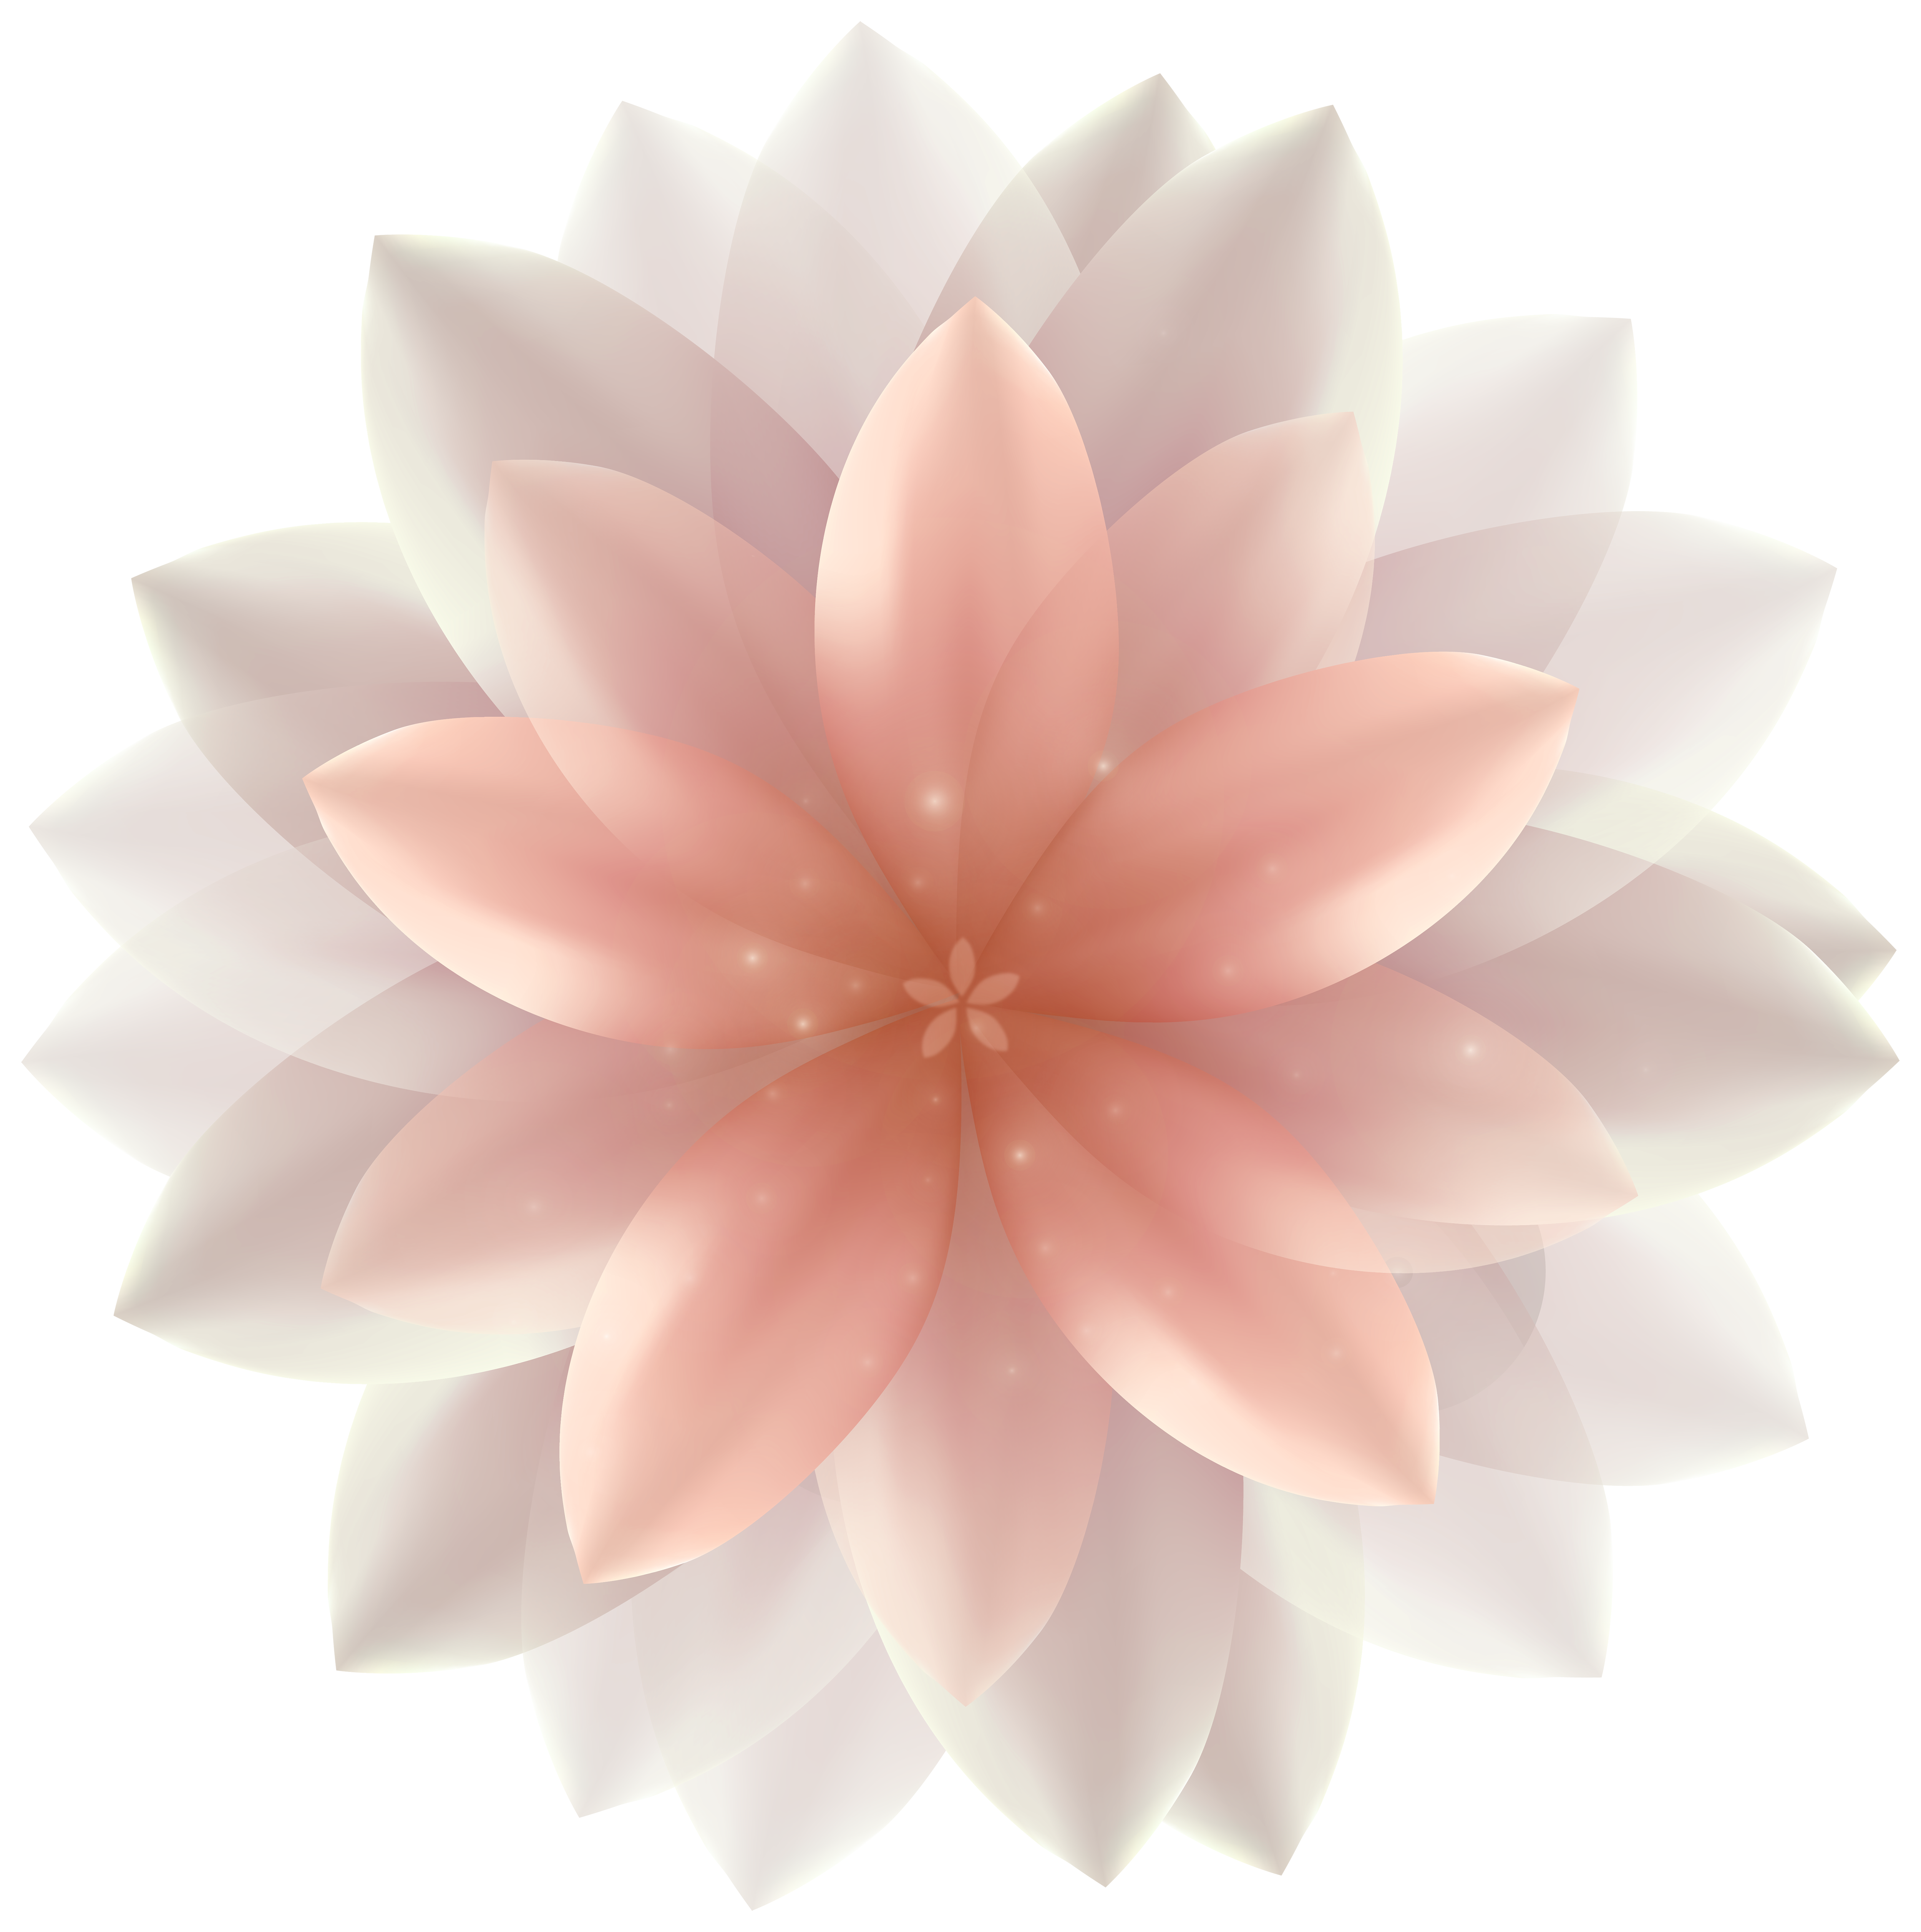 Transparent flower png. Beautiful clipart image gallery